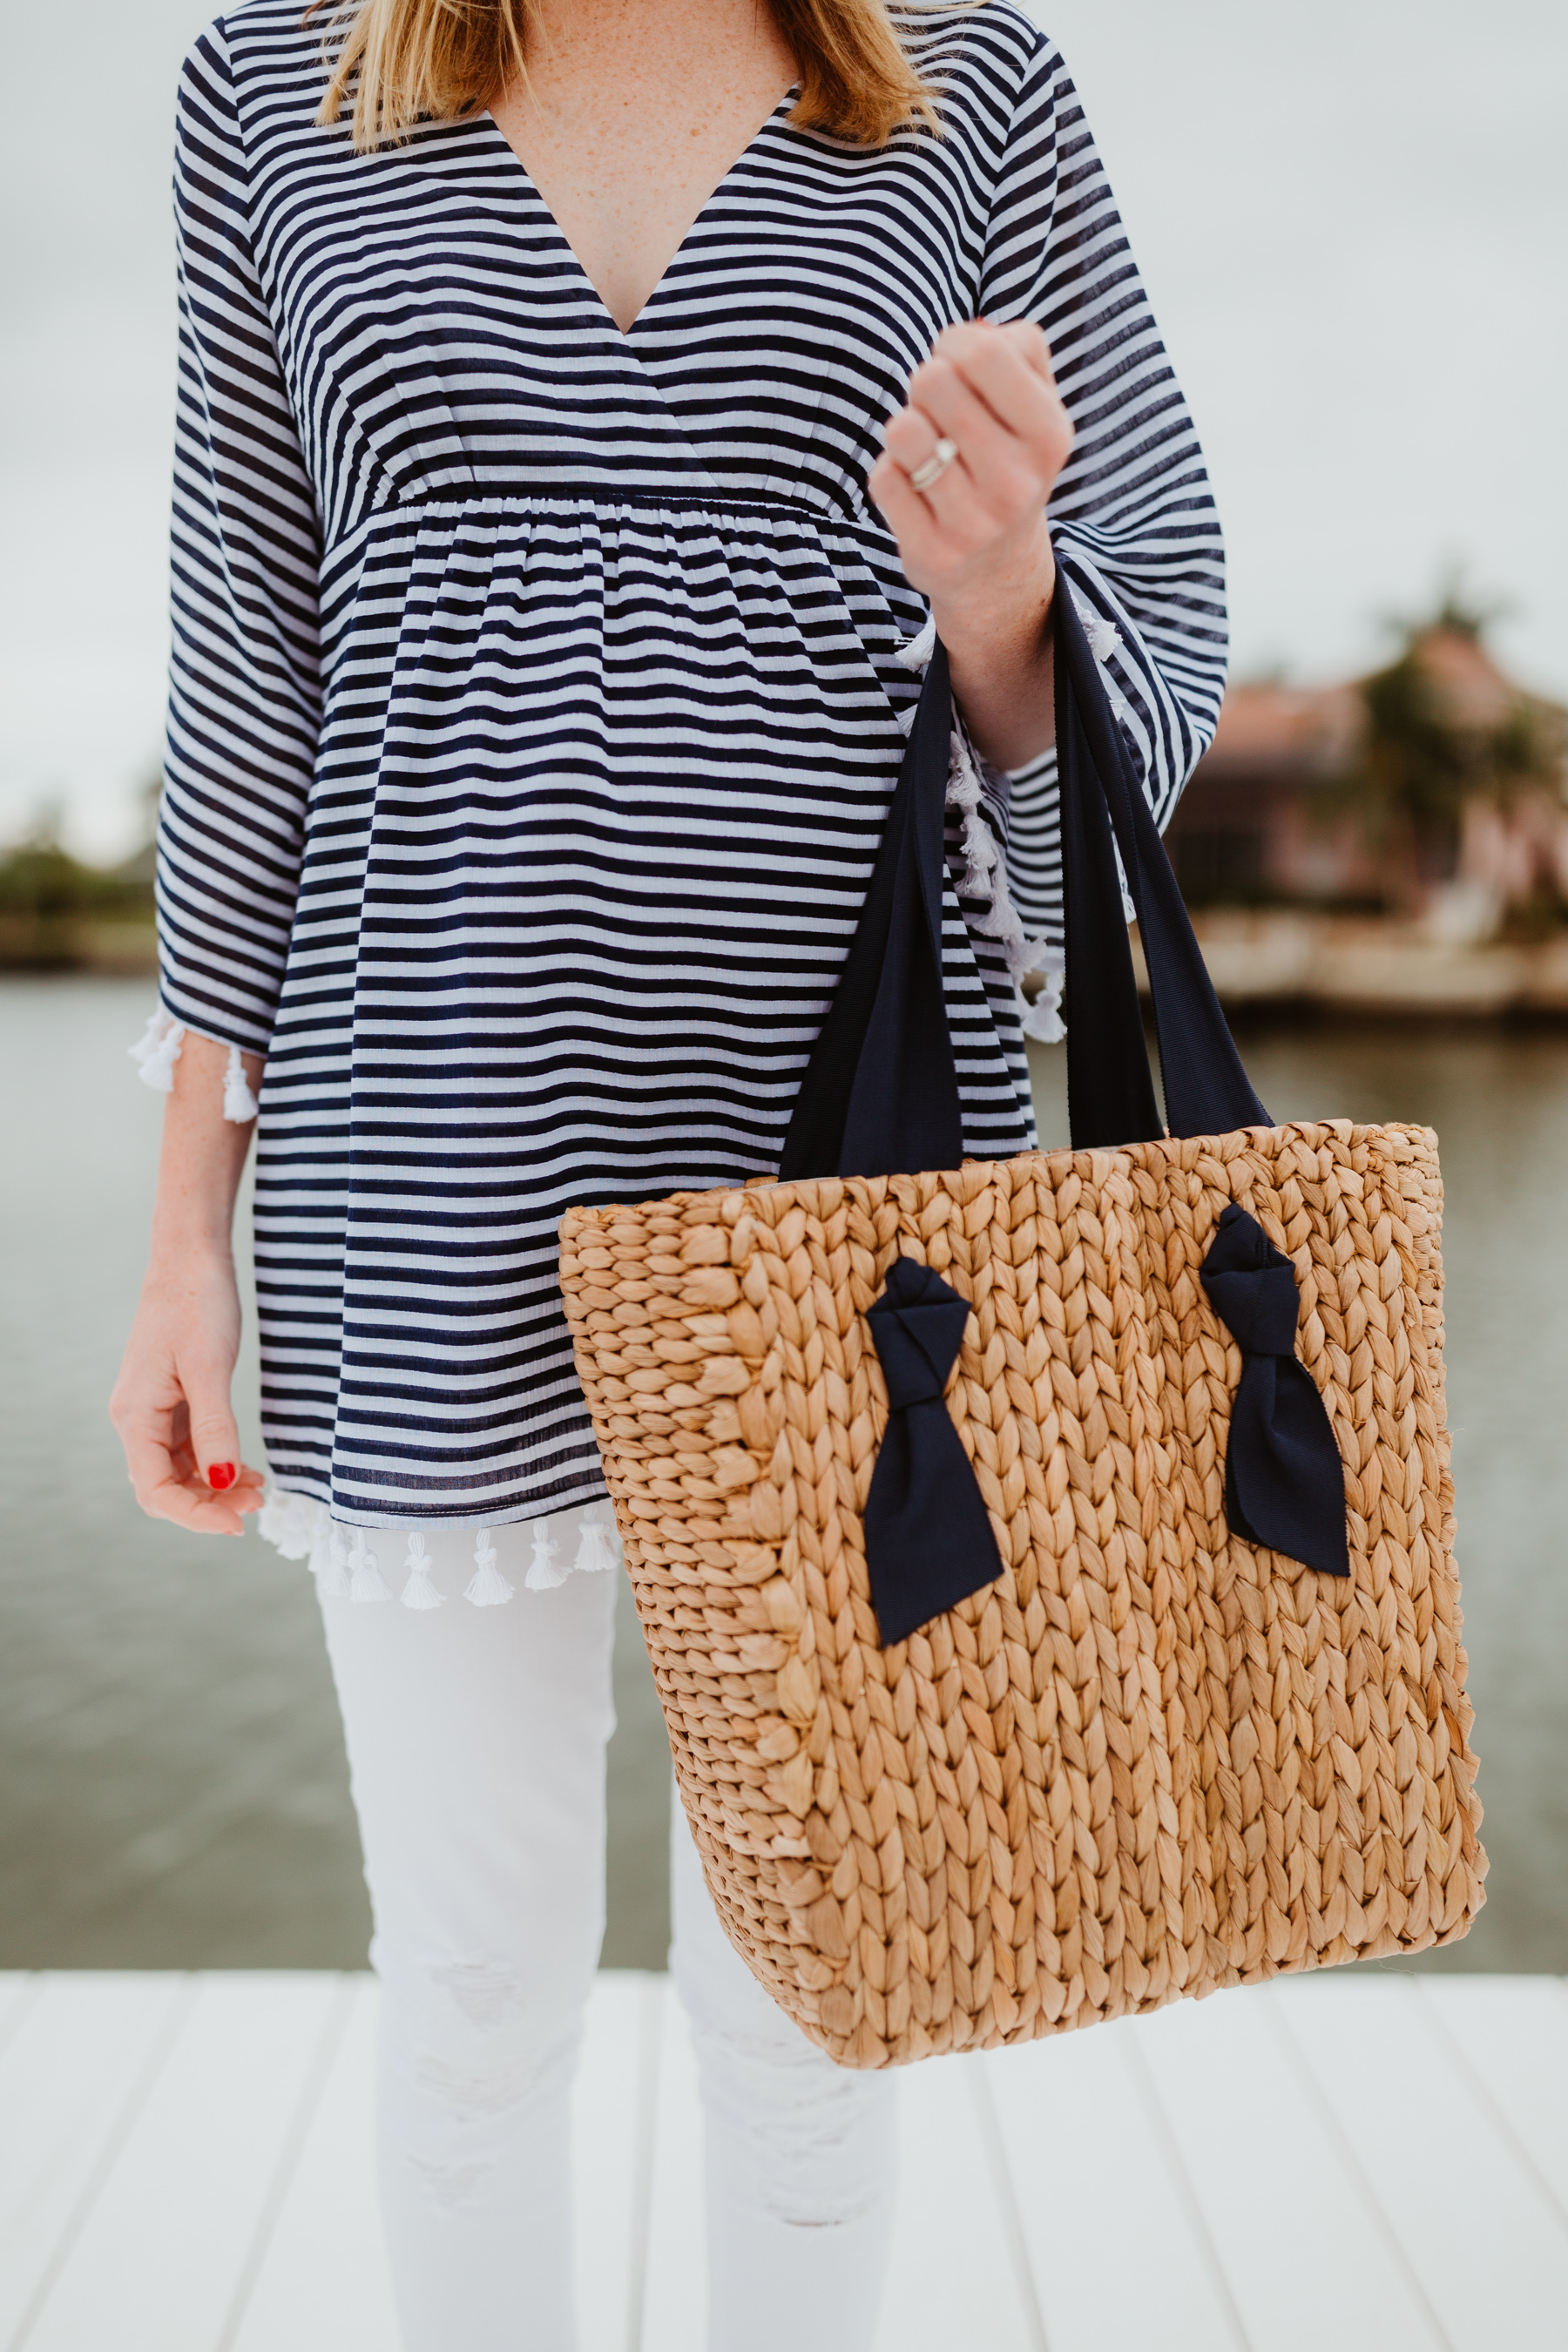 Sail to Sable Crinkle Cotton Tunic Top & Pamela Munson Woven Tote